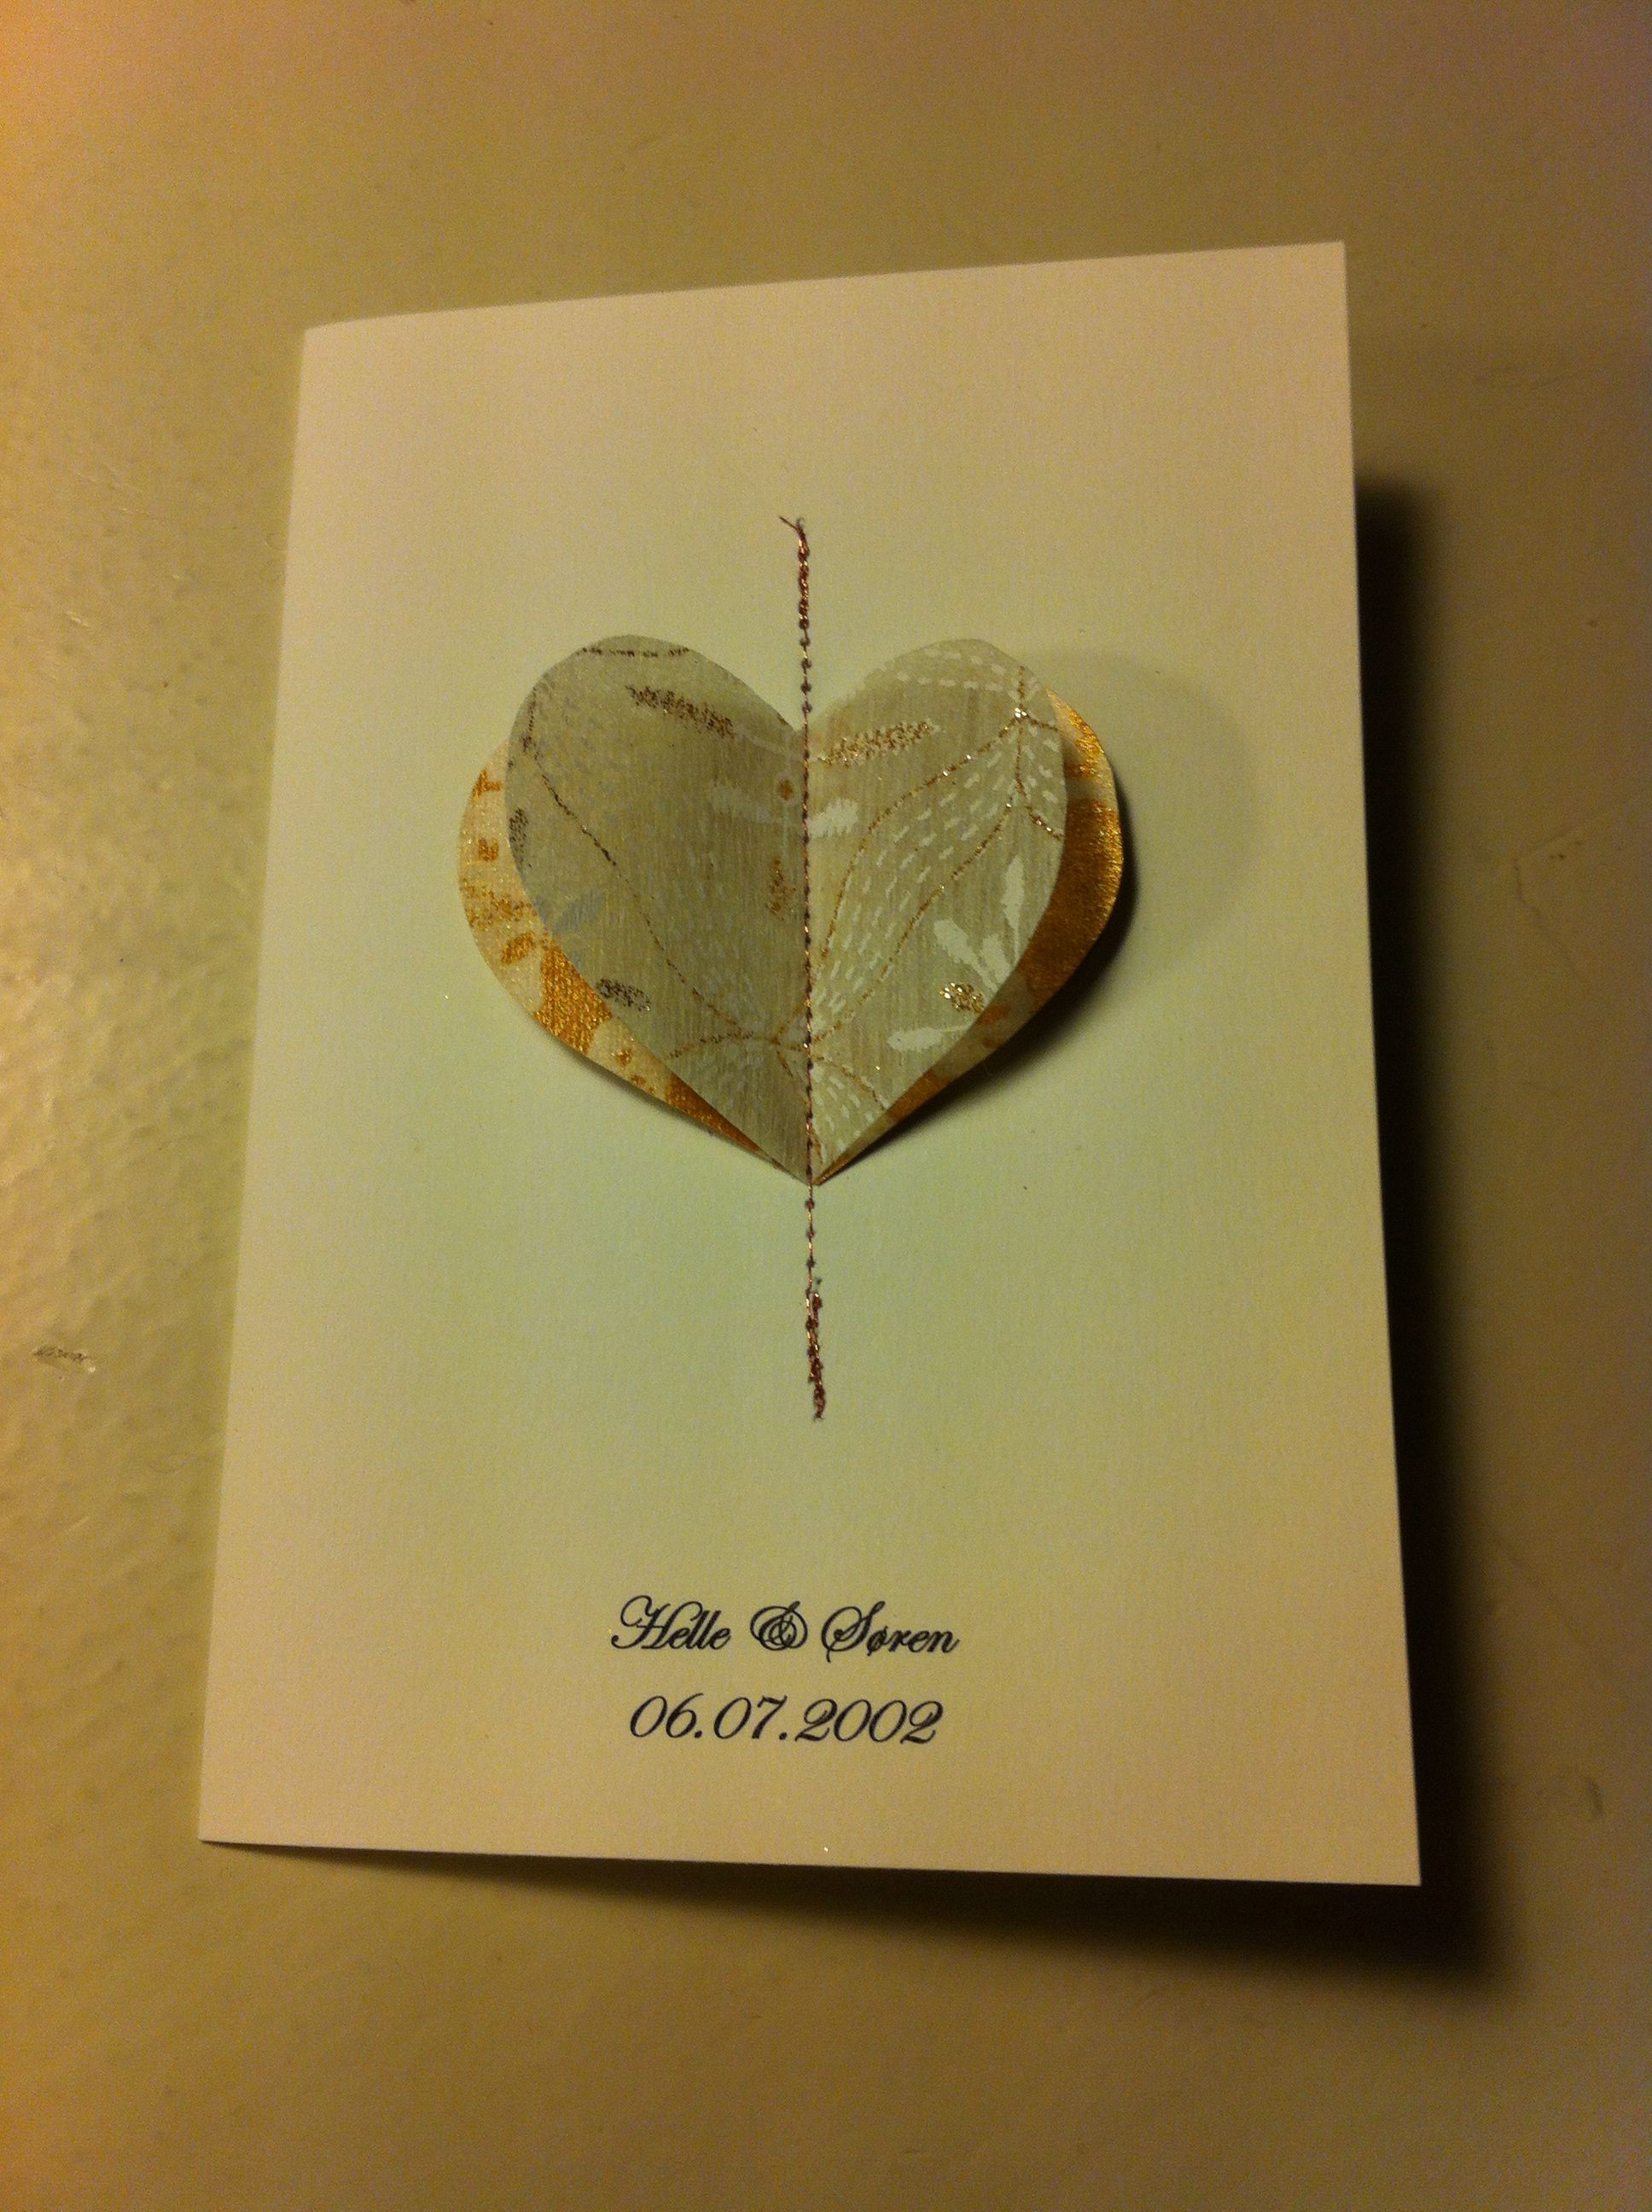 Invitation Til Kobberbryllup Made By Me Kort Og Godt Cards